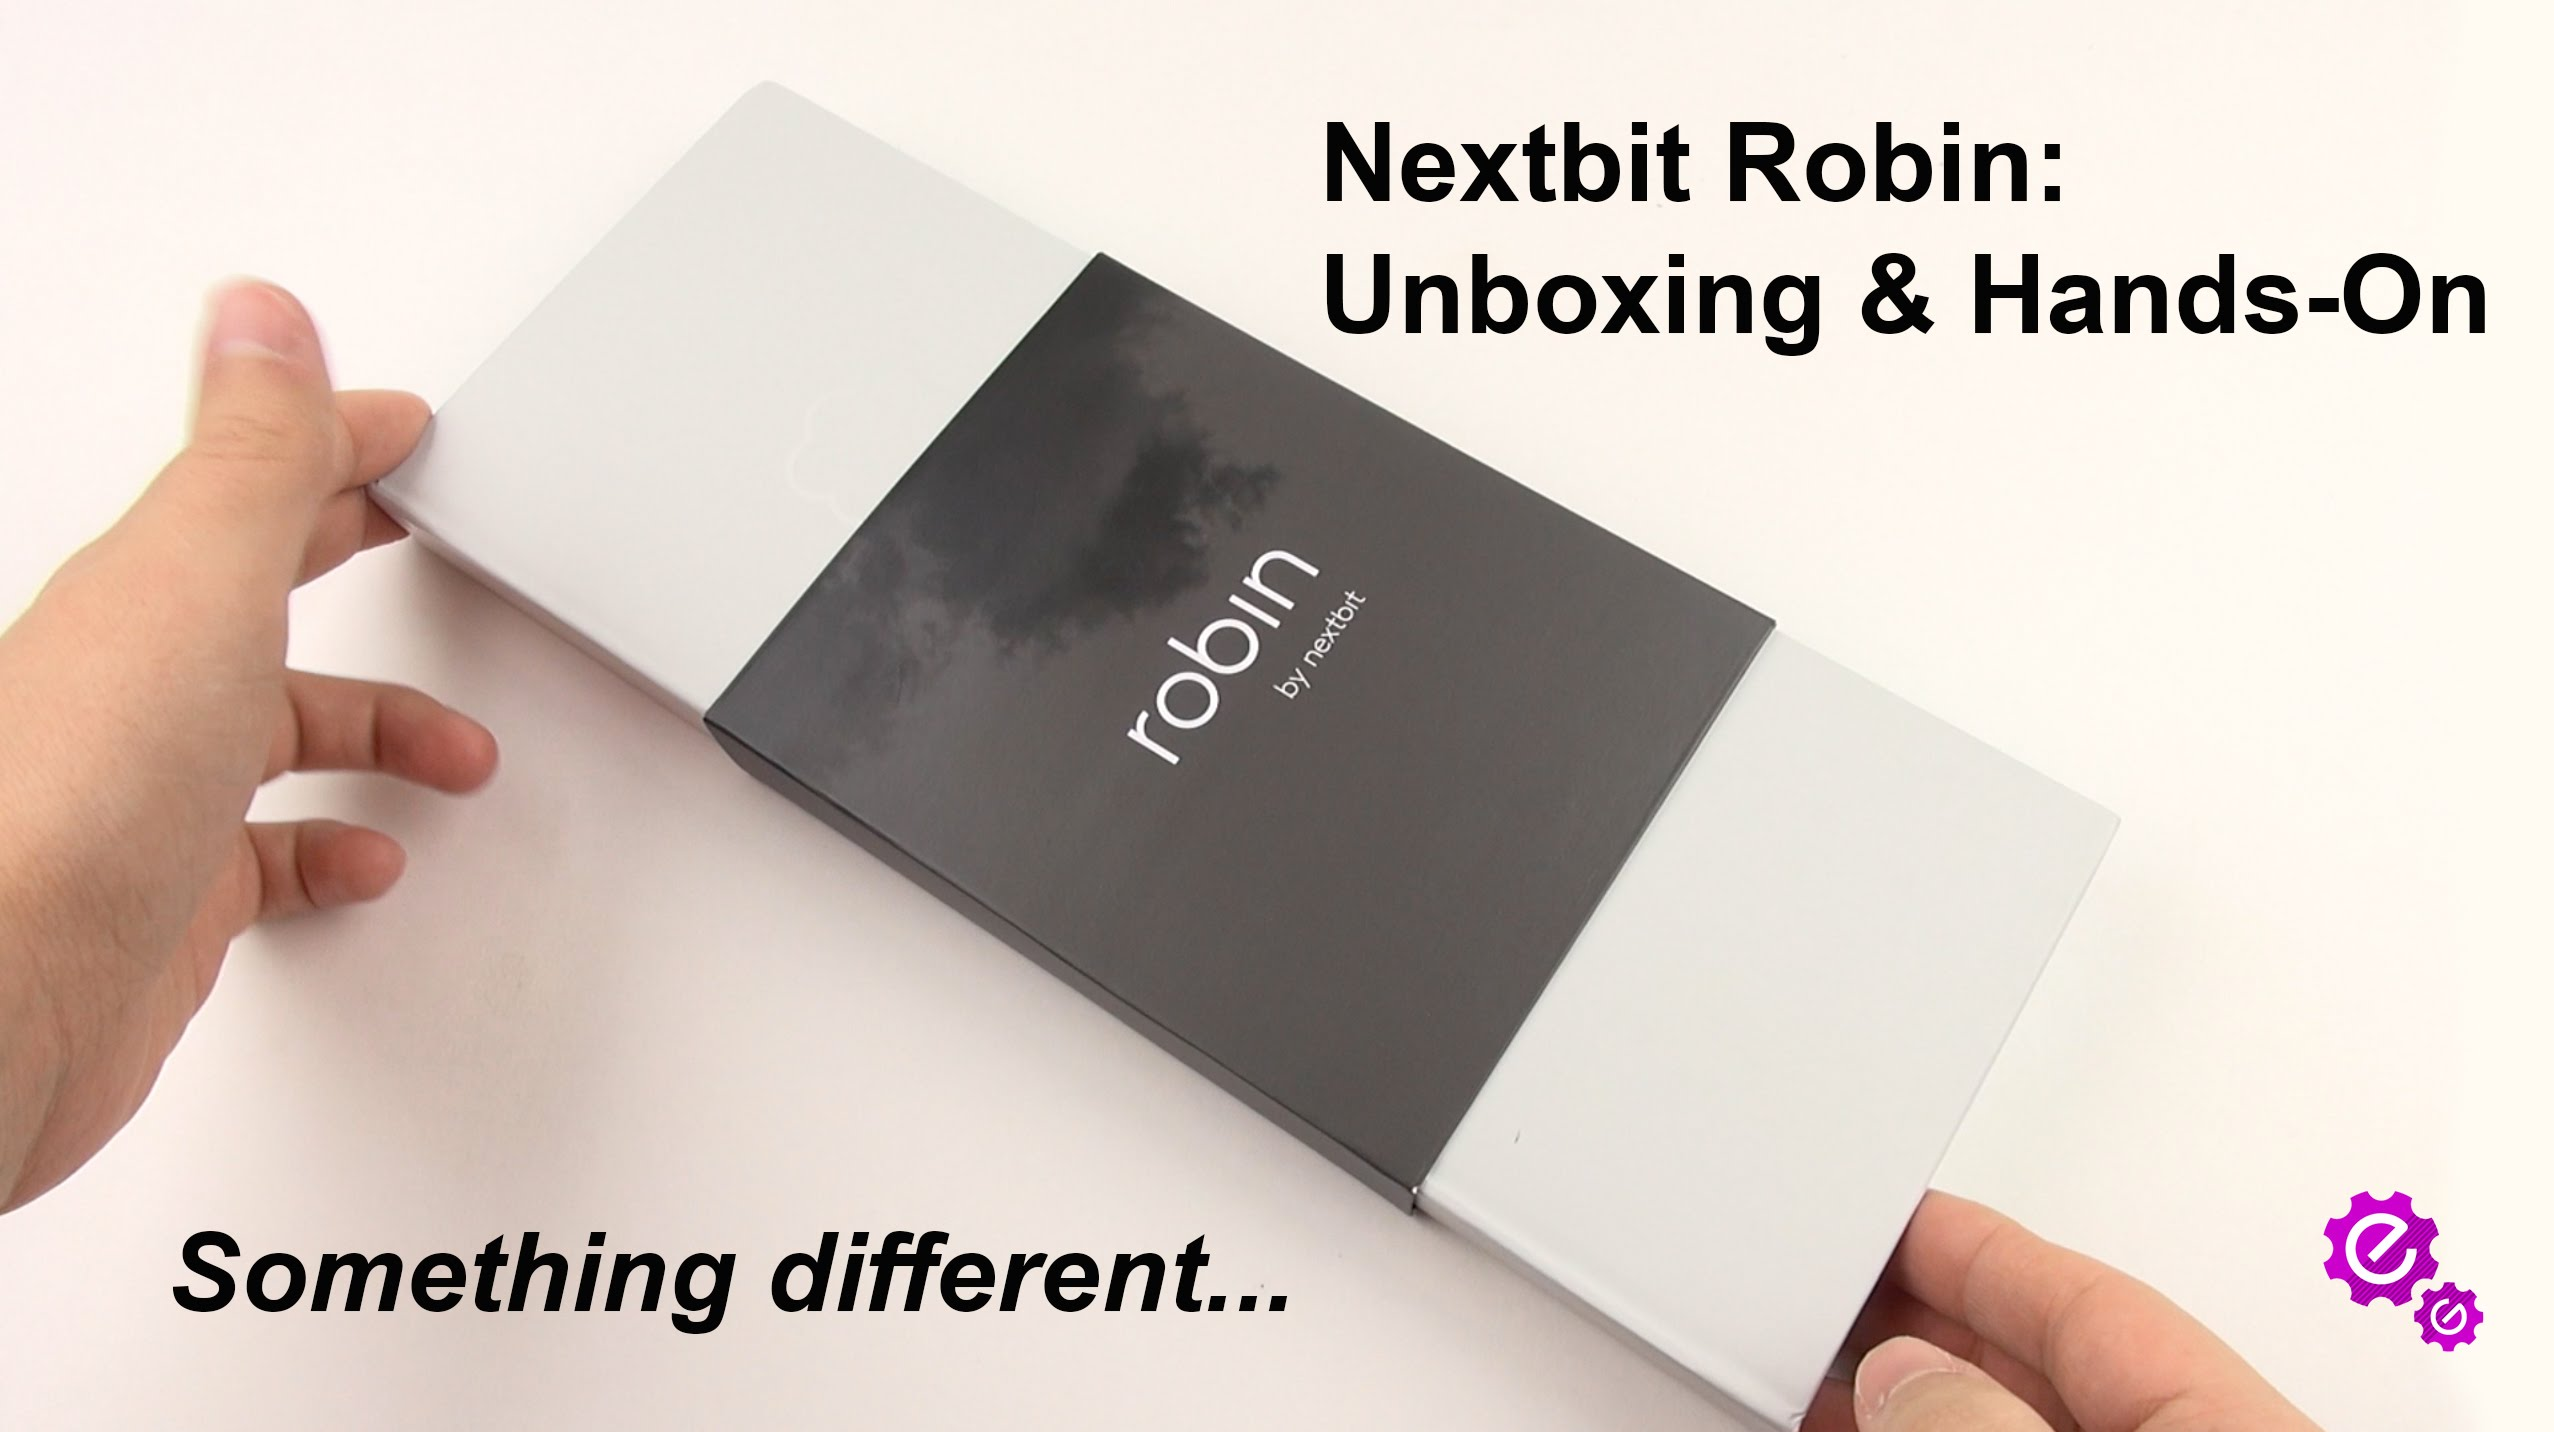 Nextbit Robin: Unboxing & Hands-on